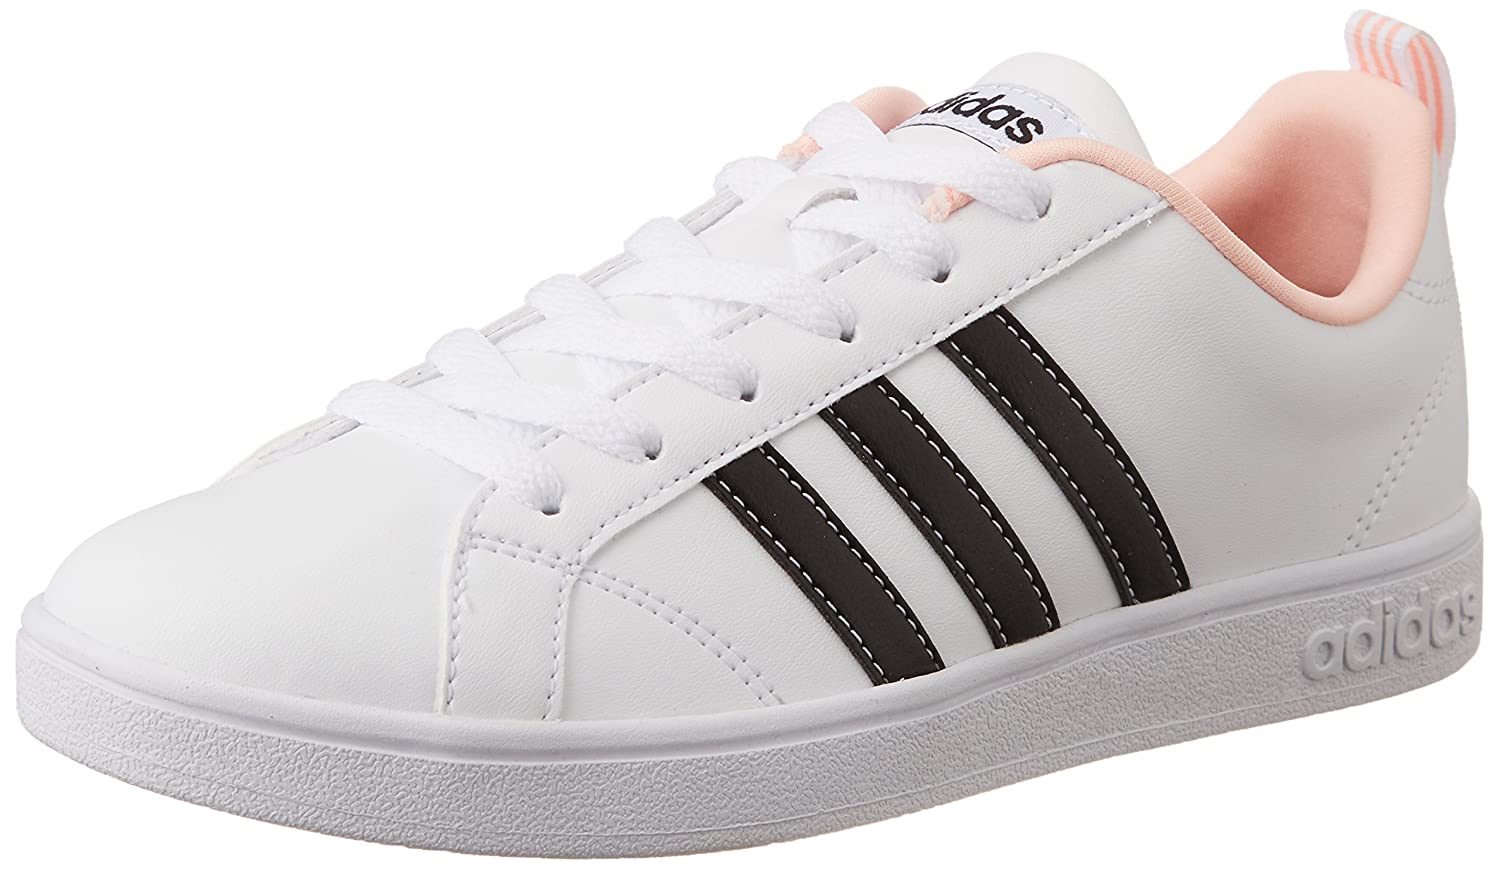 Adidas - VS Advantage W - B74573 - Color: White - Size: 8.0